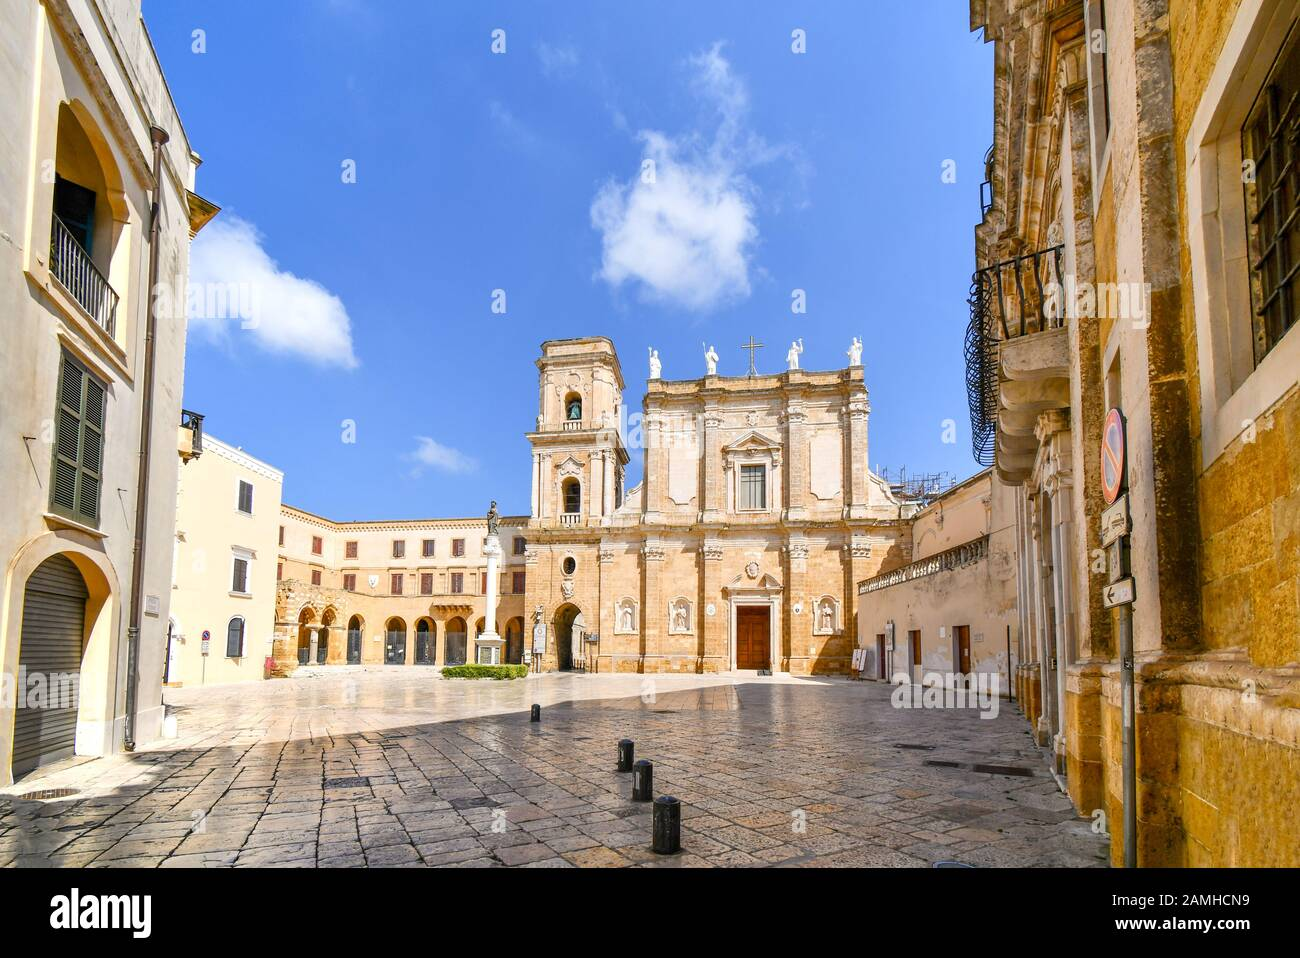 The piazza courtyard in front of St. John the Baptist Church also known as the Duomo Cathedral in the seaside town of Brindisi, Italy. Stock Photo